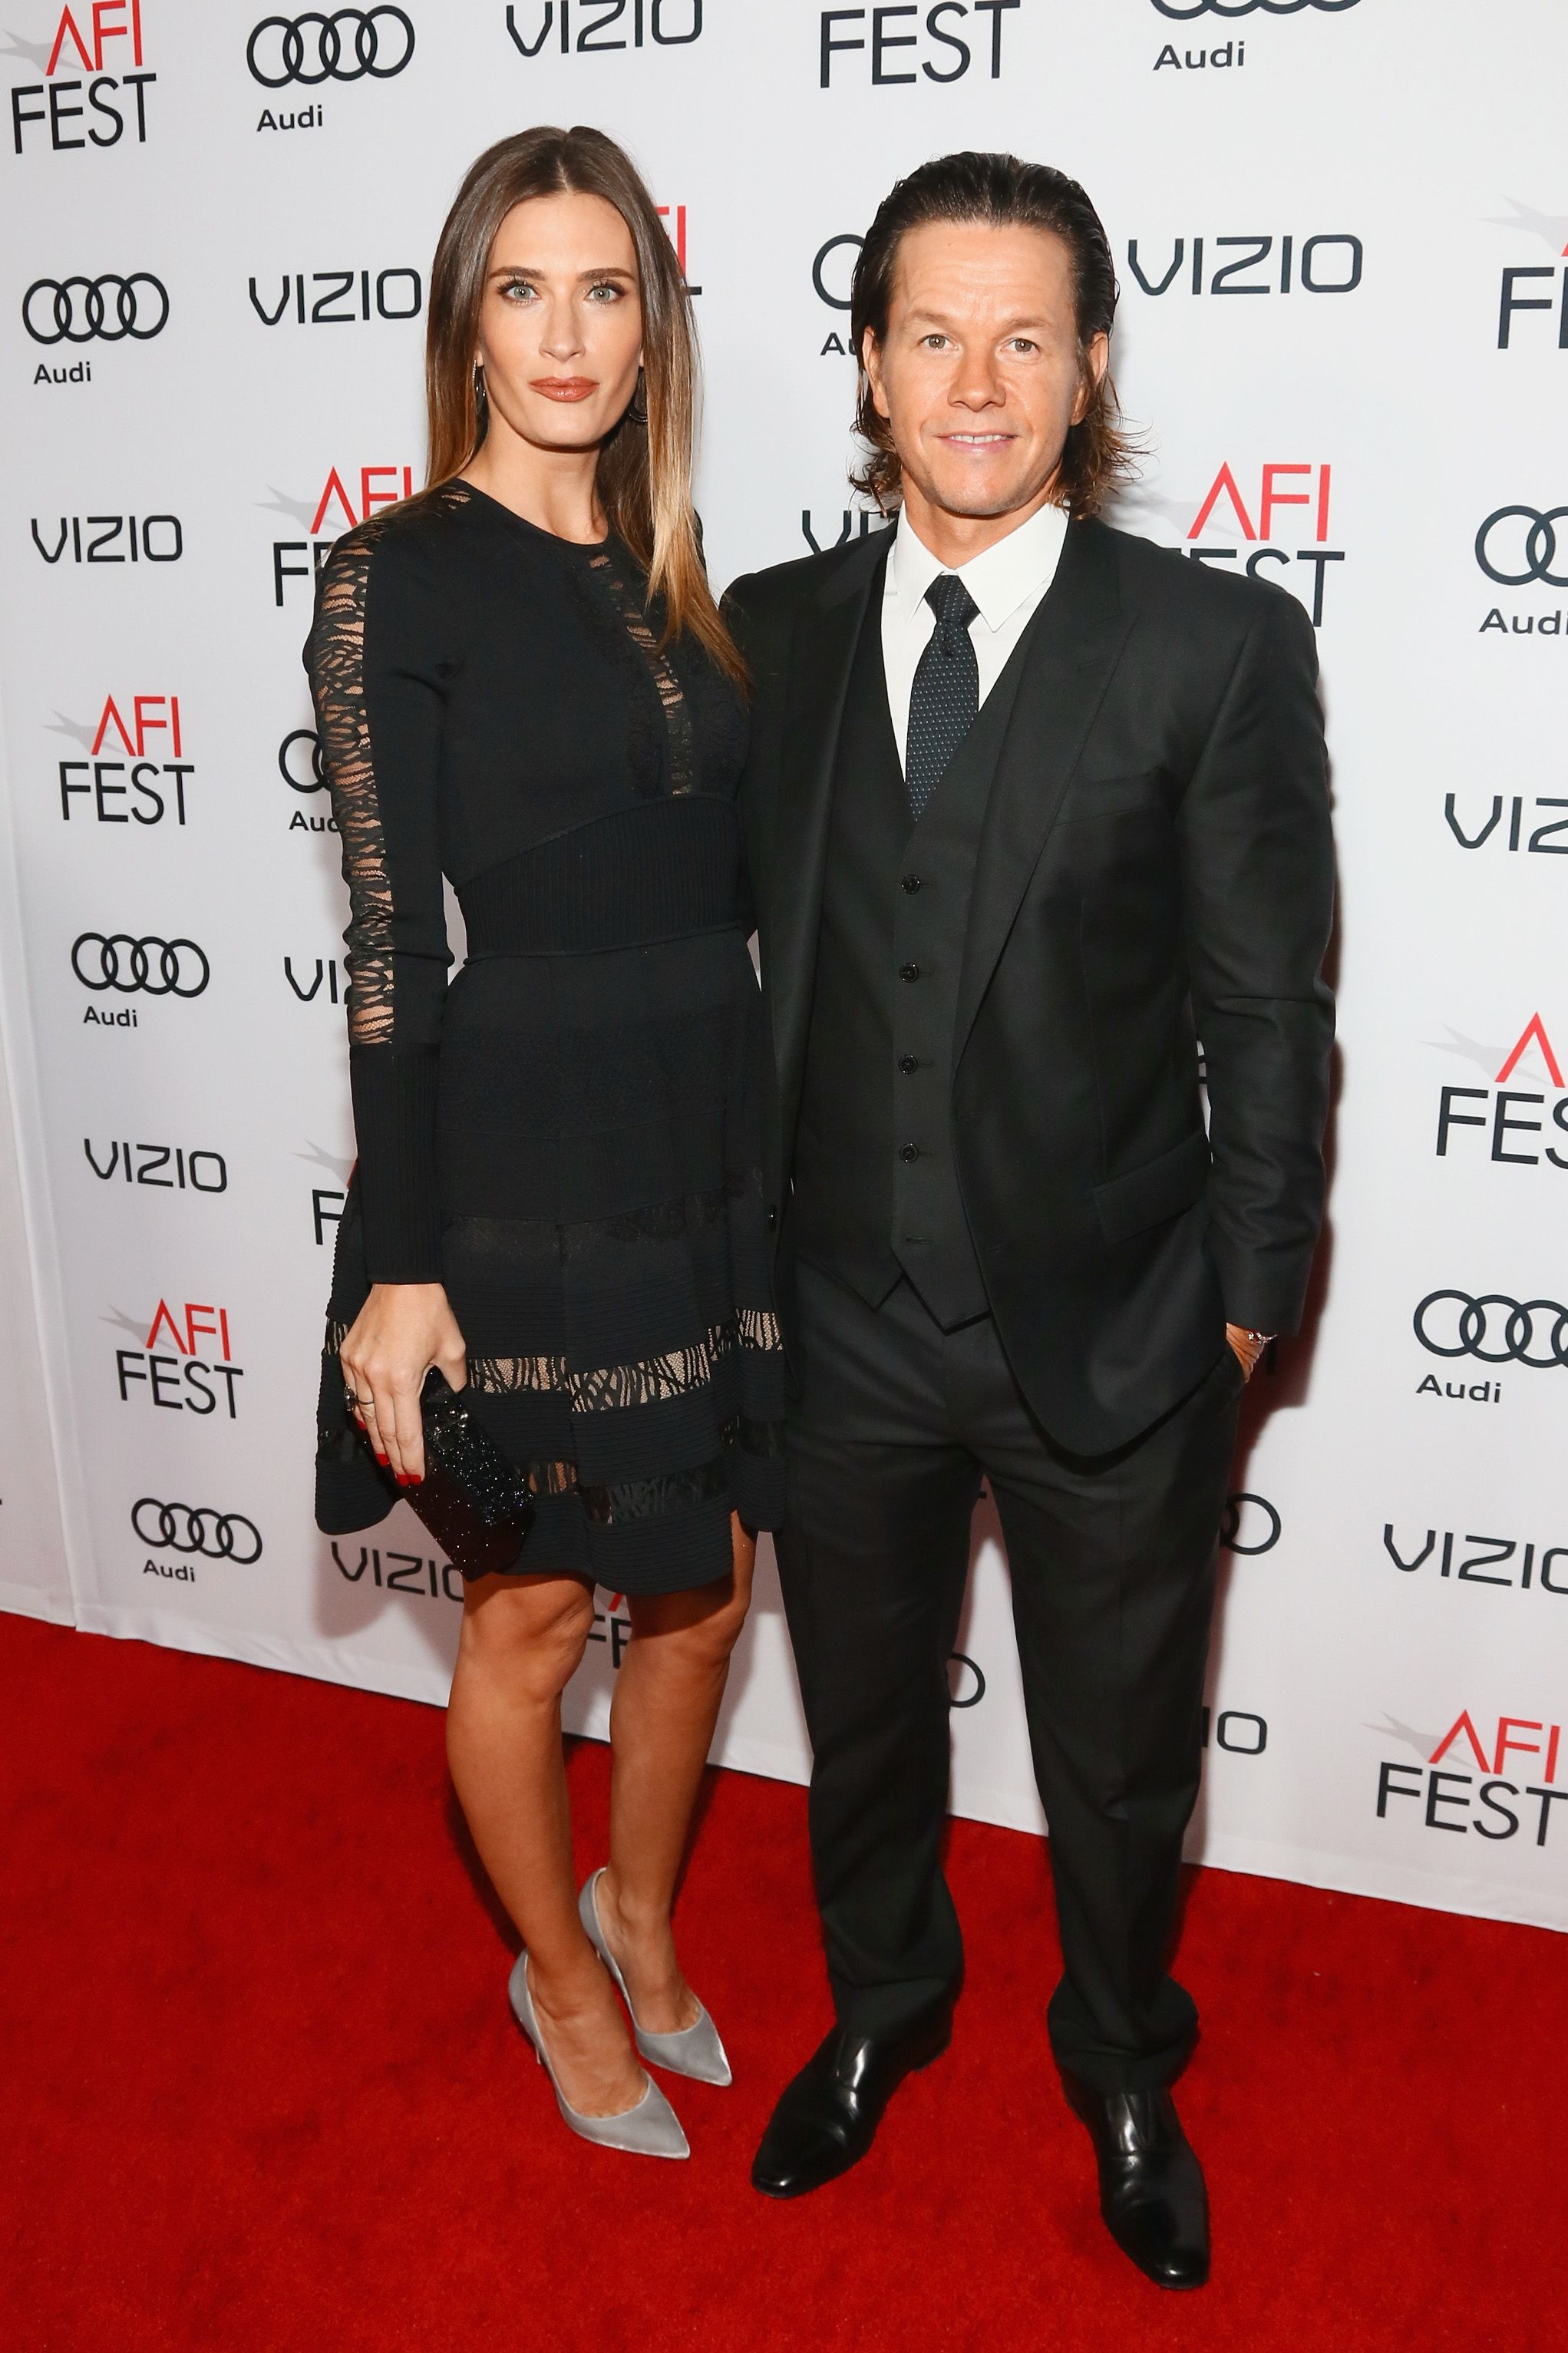 """Rhea Durham and husband Mark Wahlberg at the premiere of """"Patriots Day"""" in 2016 in Hollywood 